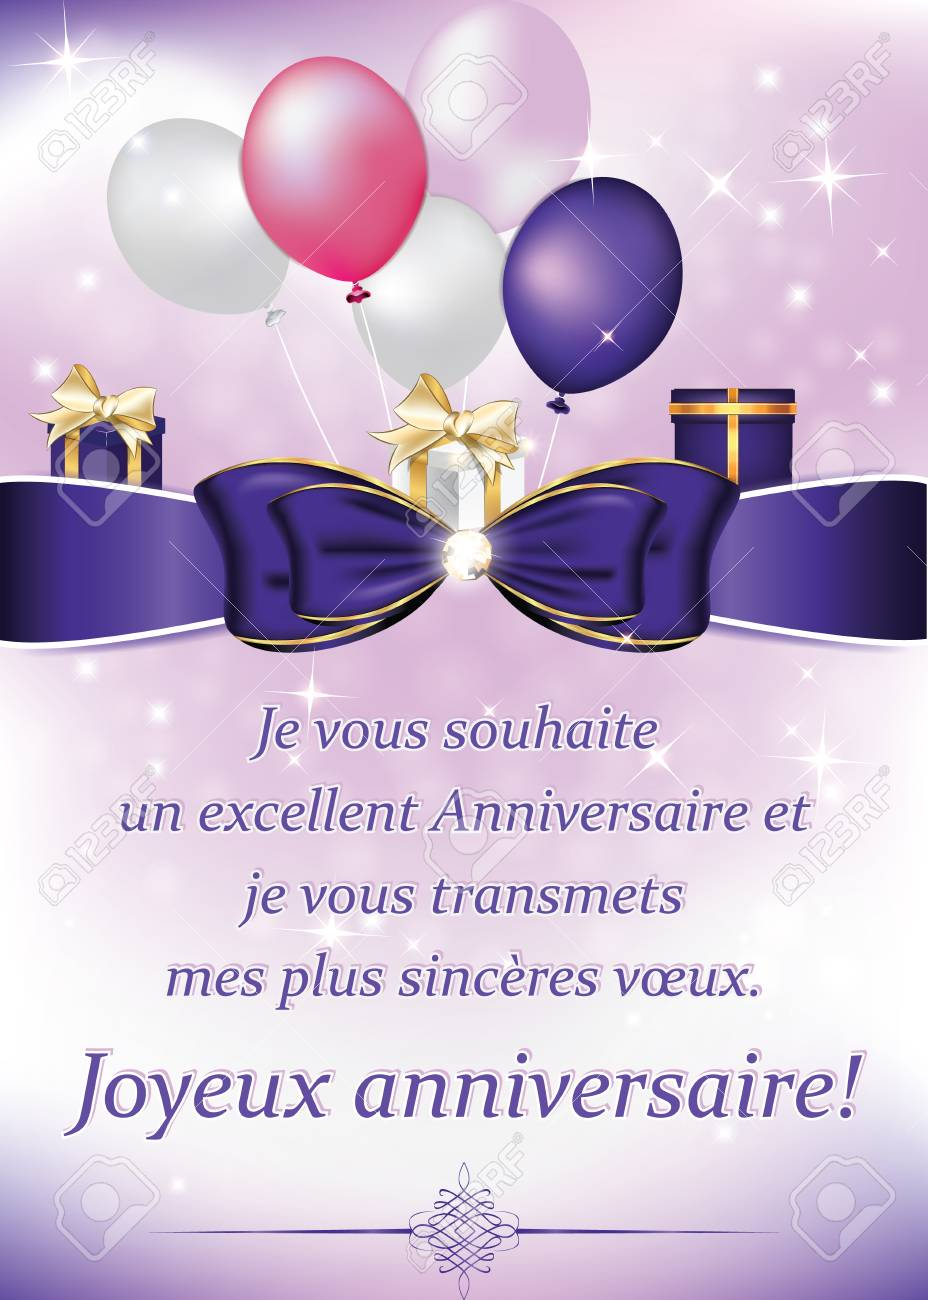 French Birthday Greeting Card With Balloons And Gifts I Wish